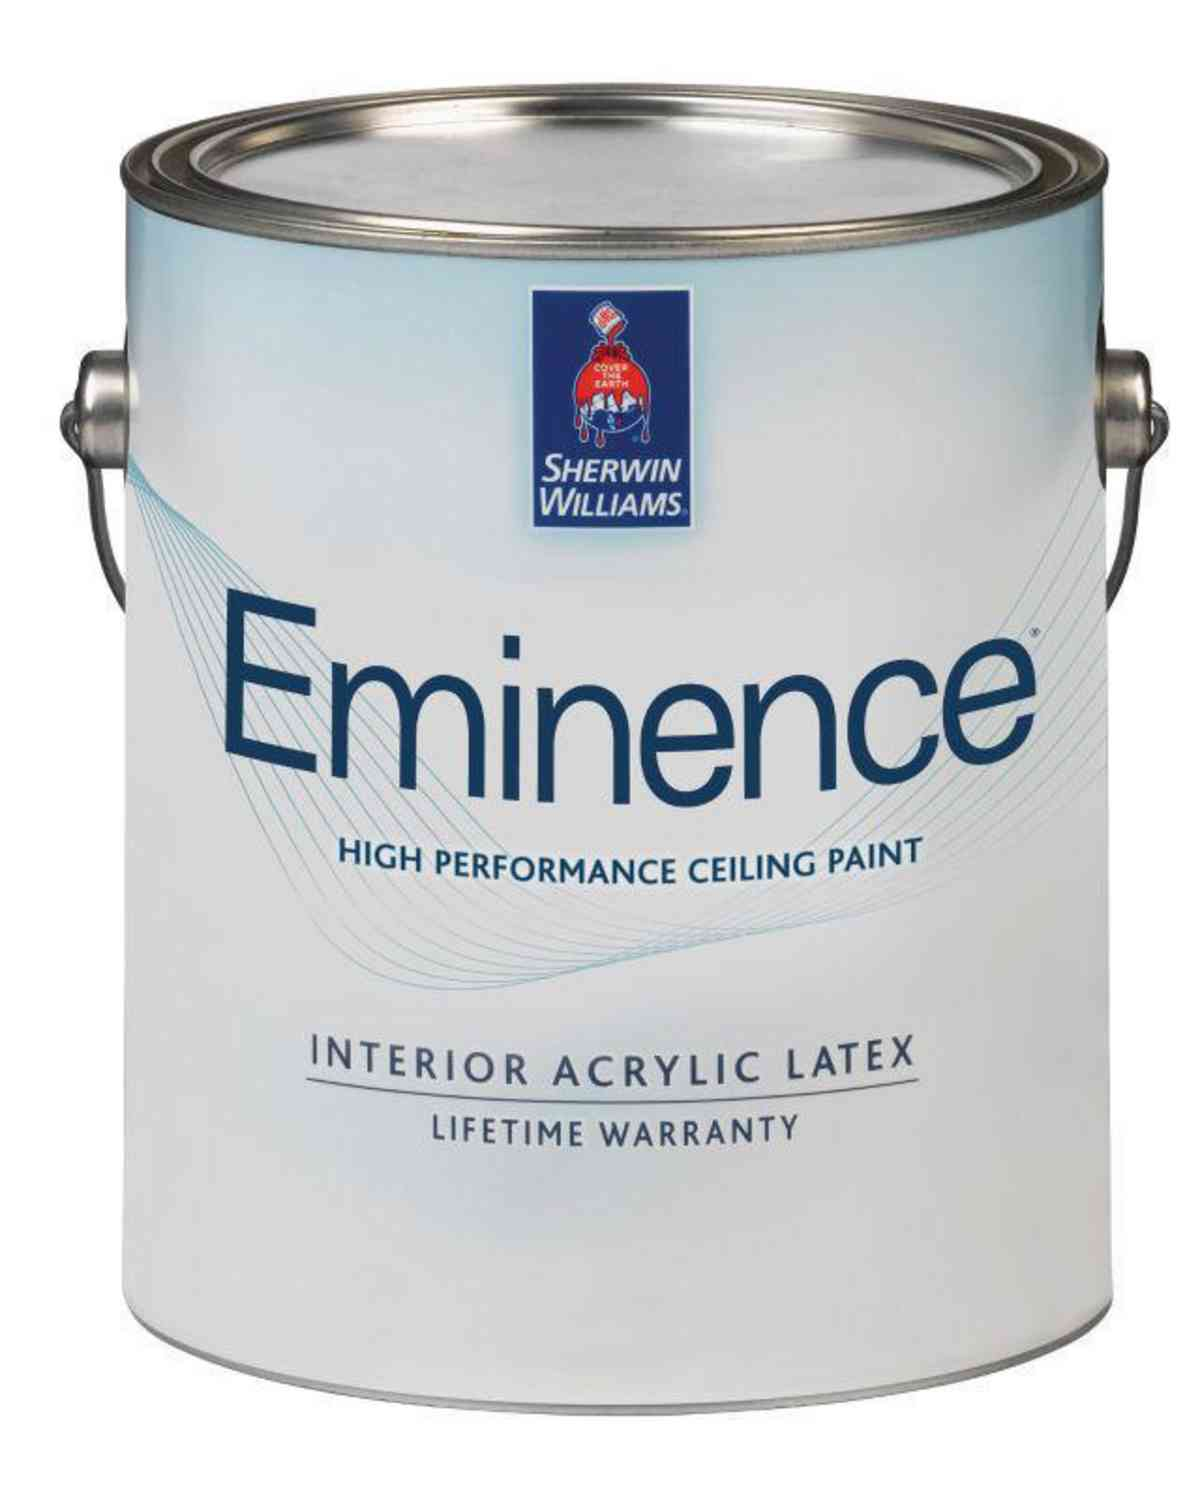 Eminence® High Performance Ceiling Paint